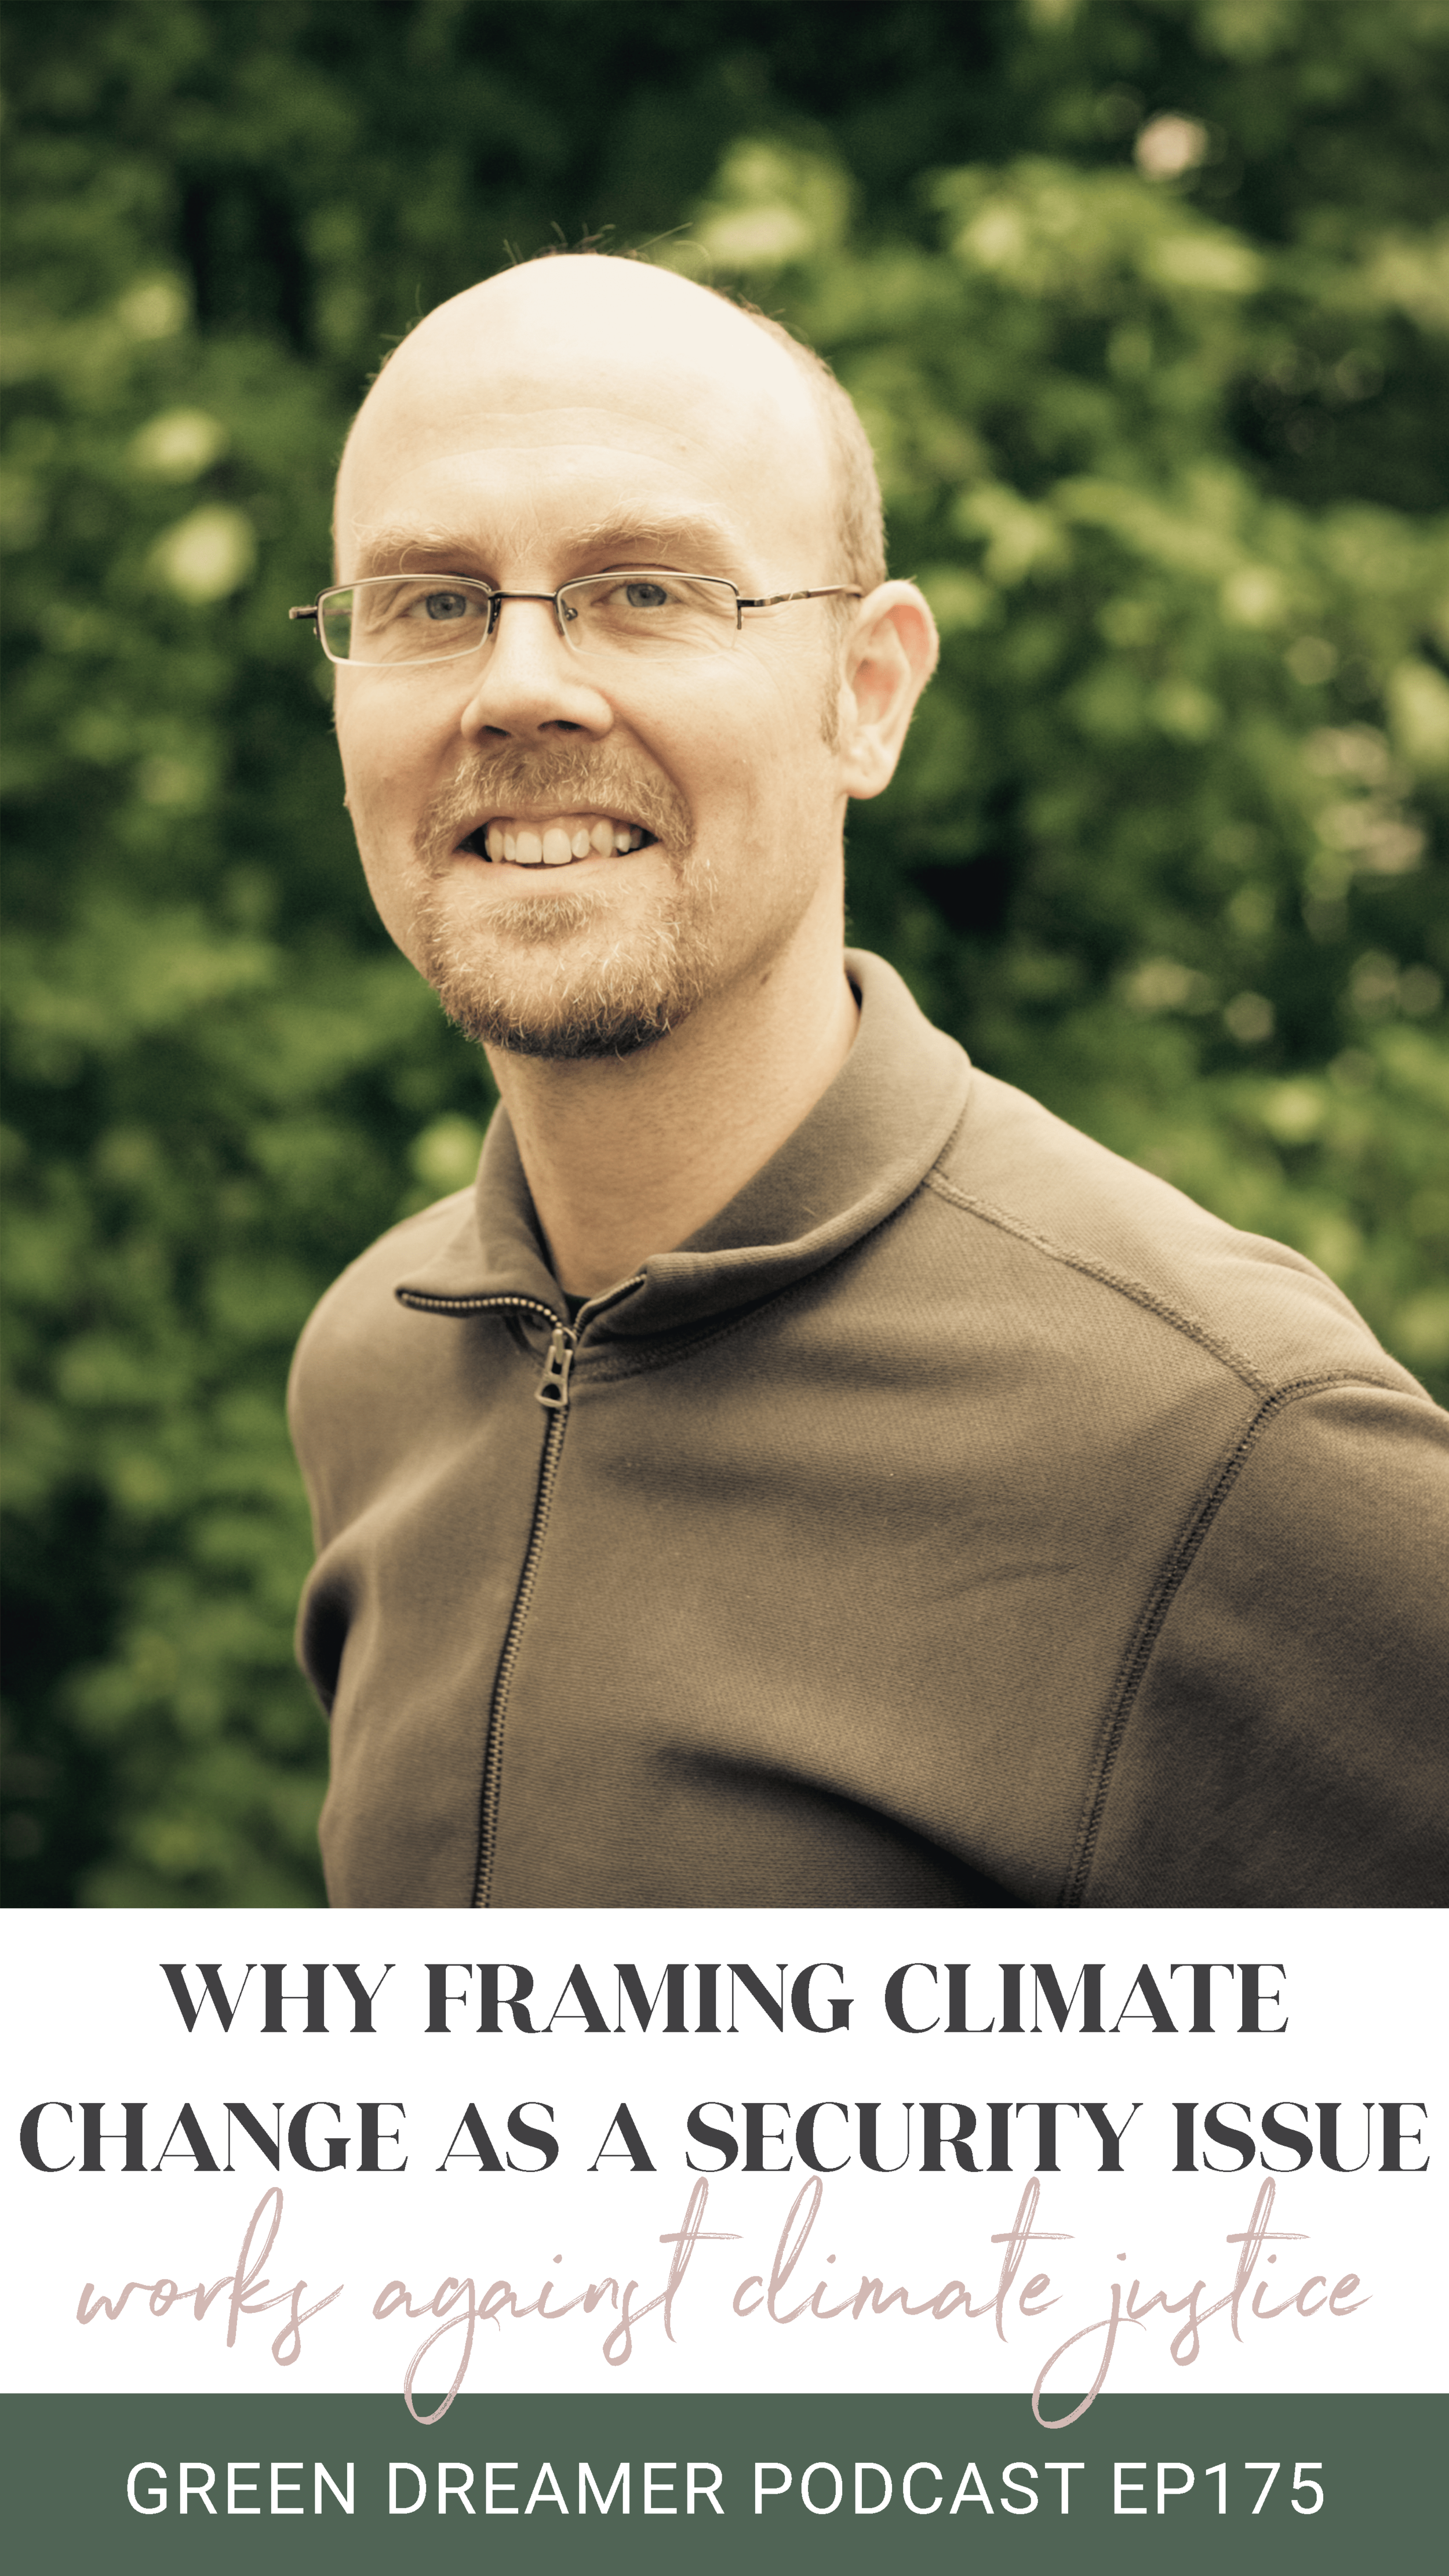 Why framing climate change as a security issue works against climate justice - Green Dreamer Podcast